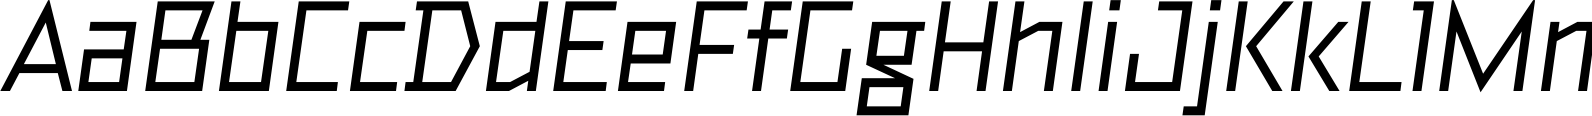 TT Bricks Medium Italic Font